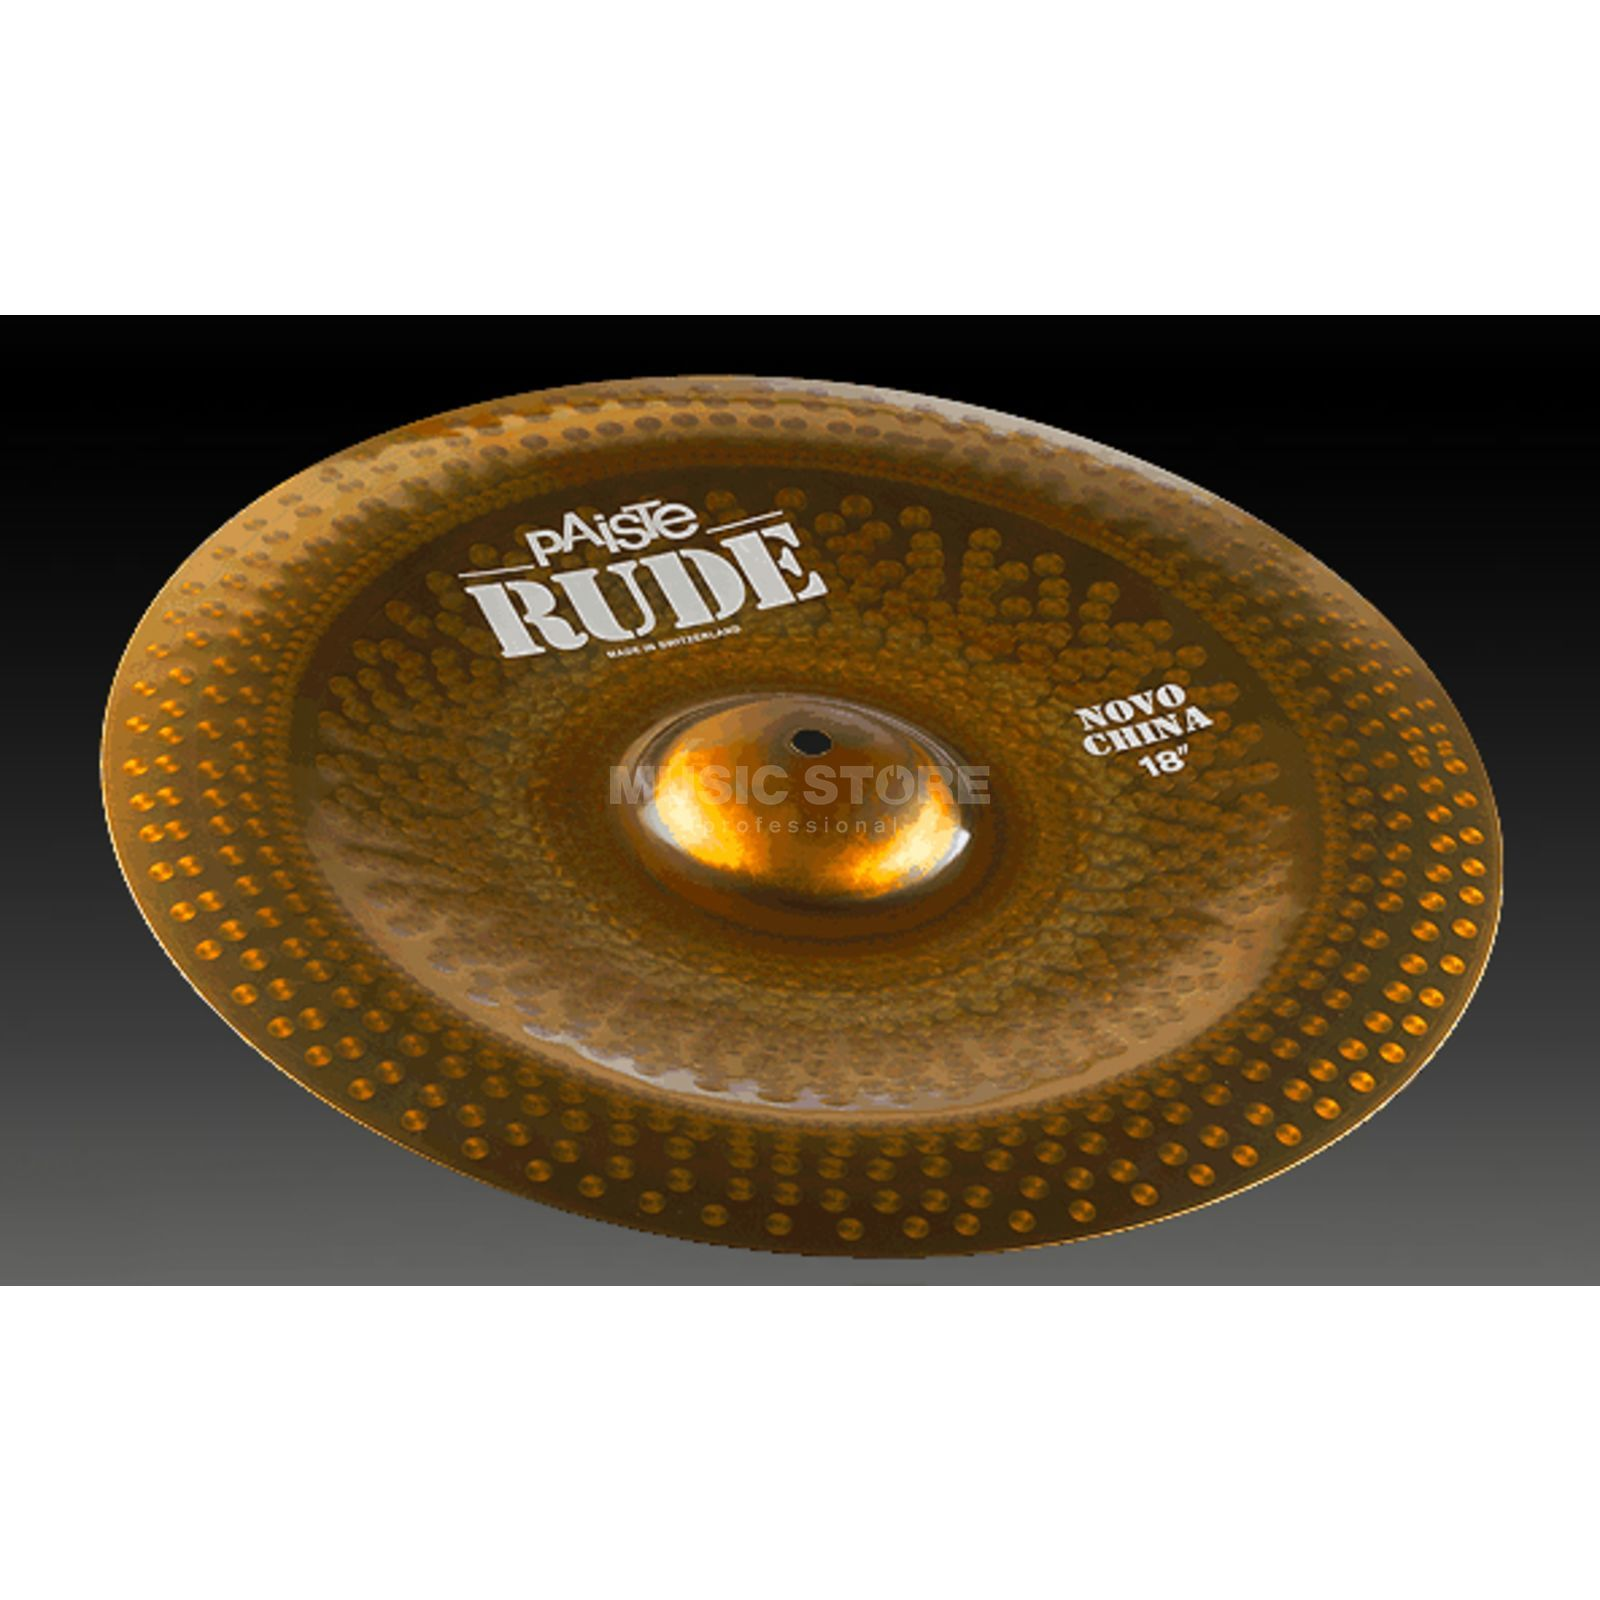 "Paiste Rude Novo China 20""  Product Image"